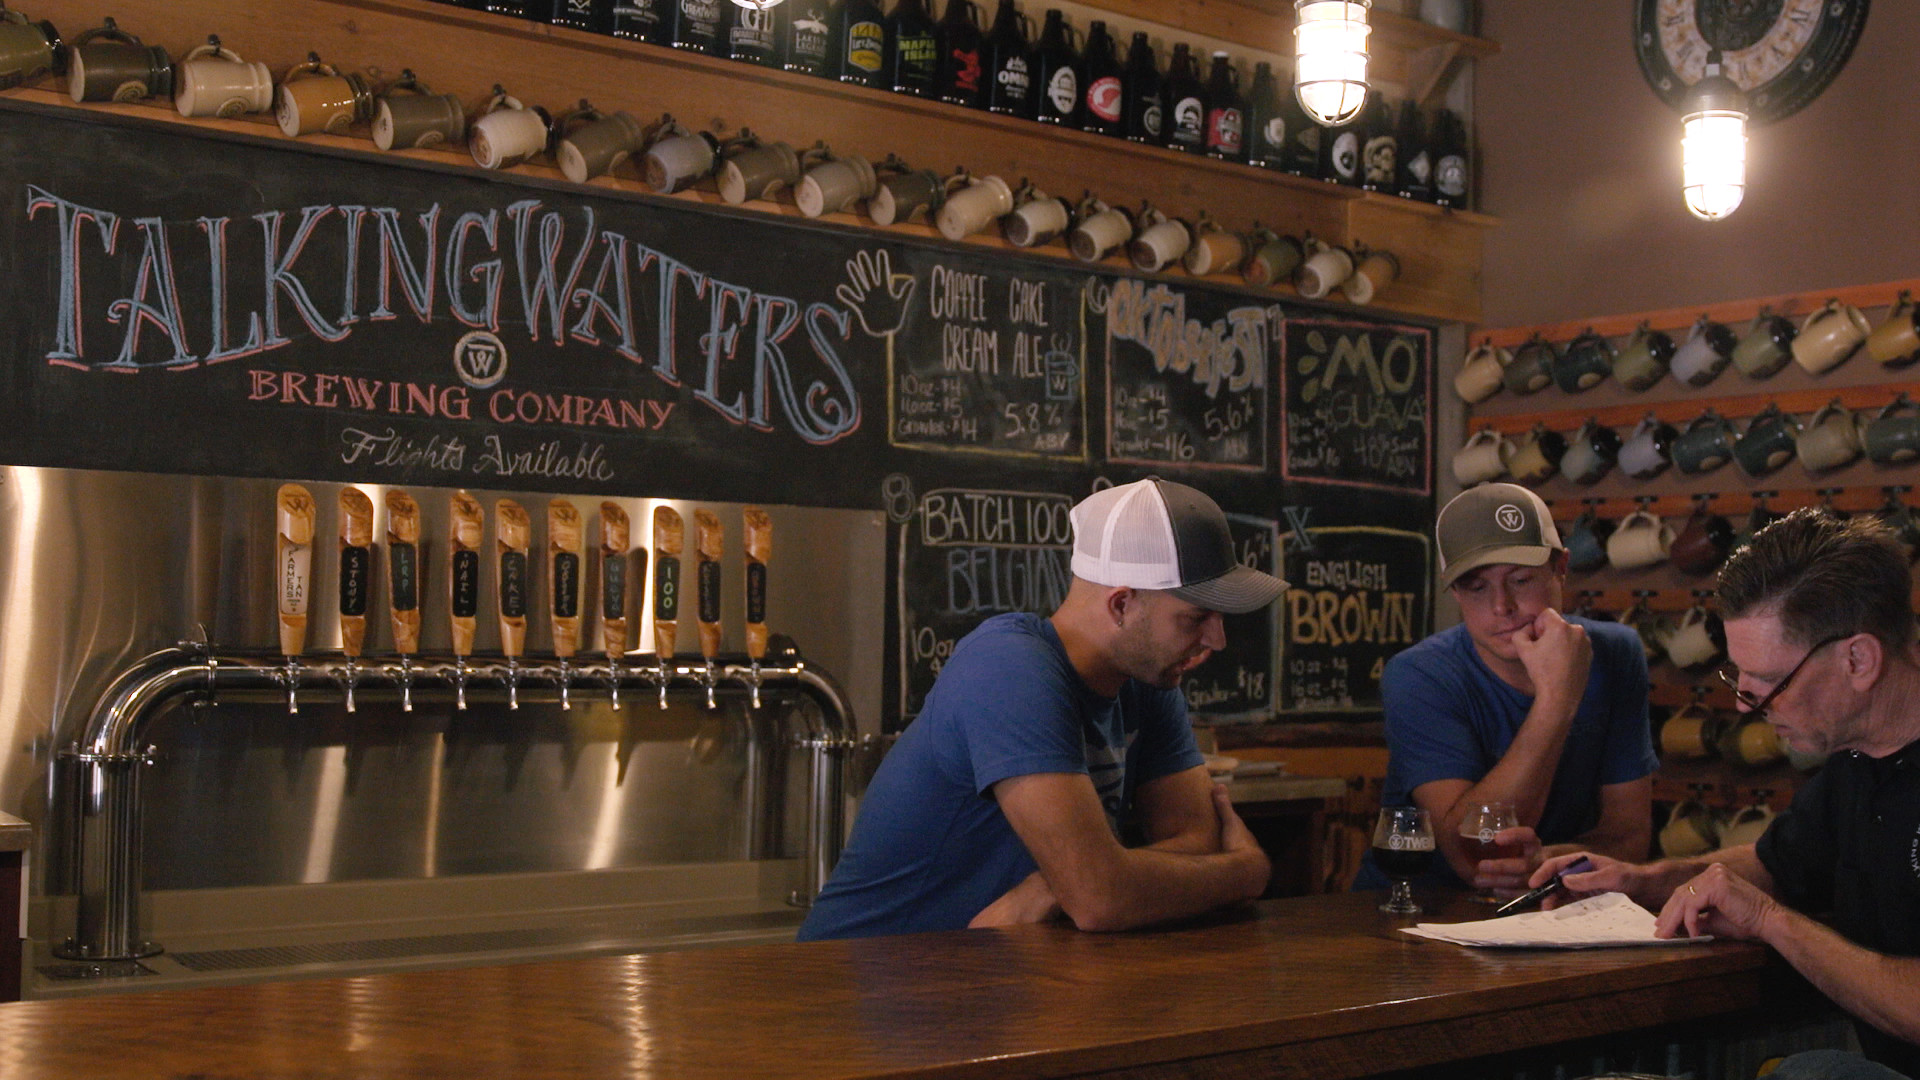 Bowl turning, origami and craft brewing featured in Postcards Season 10 premiere